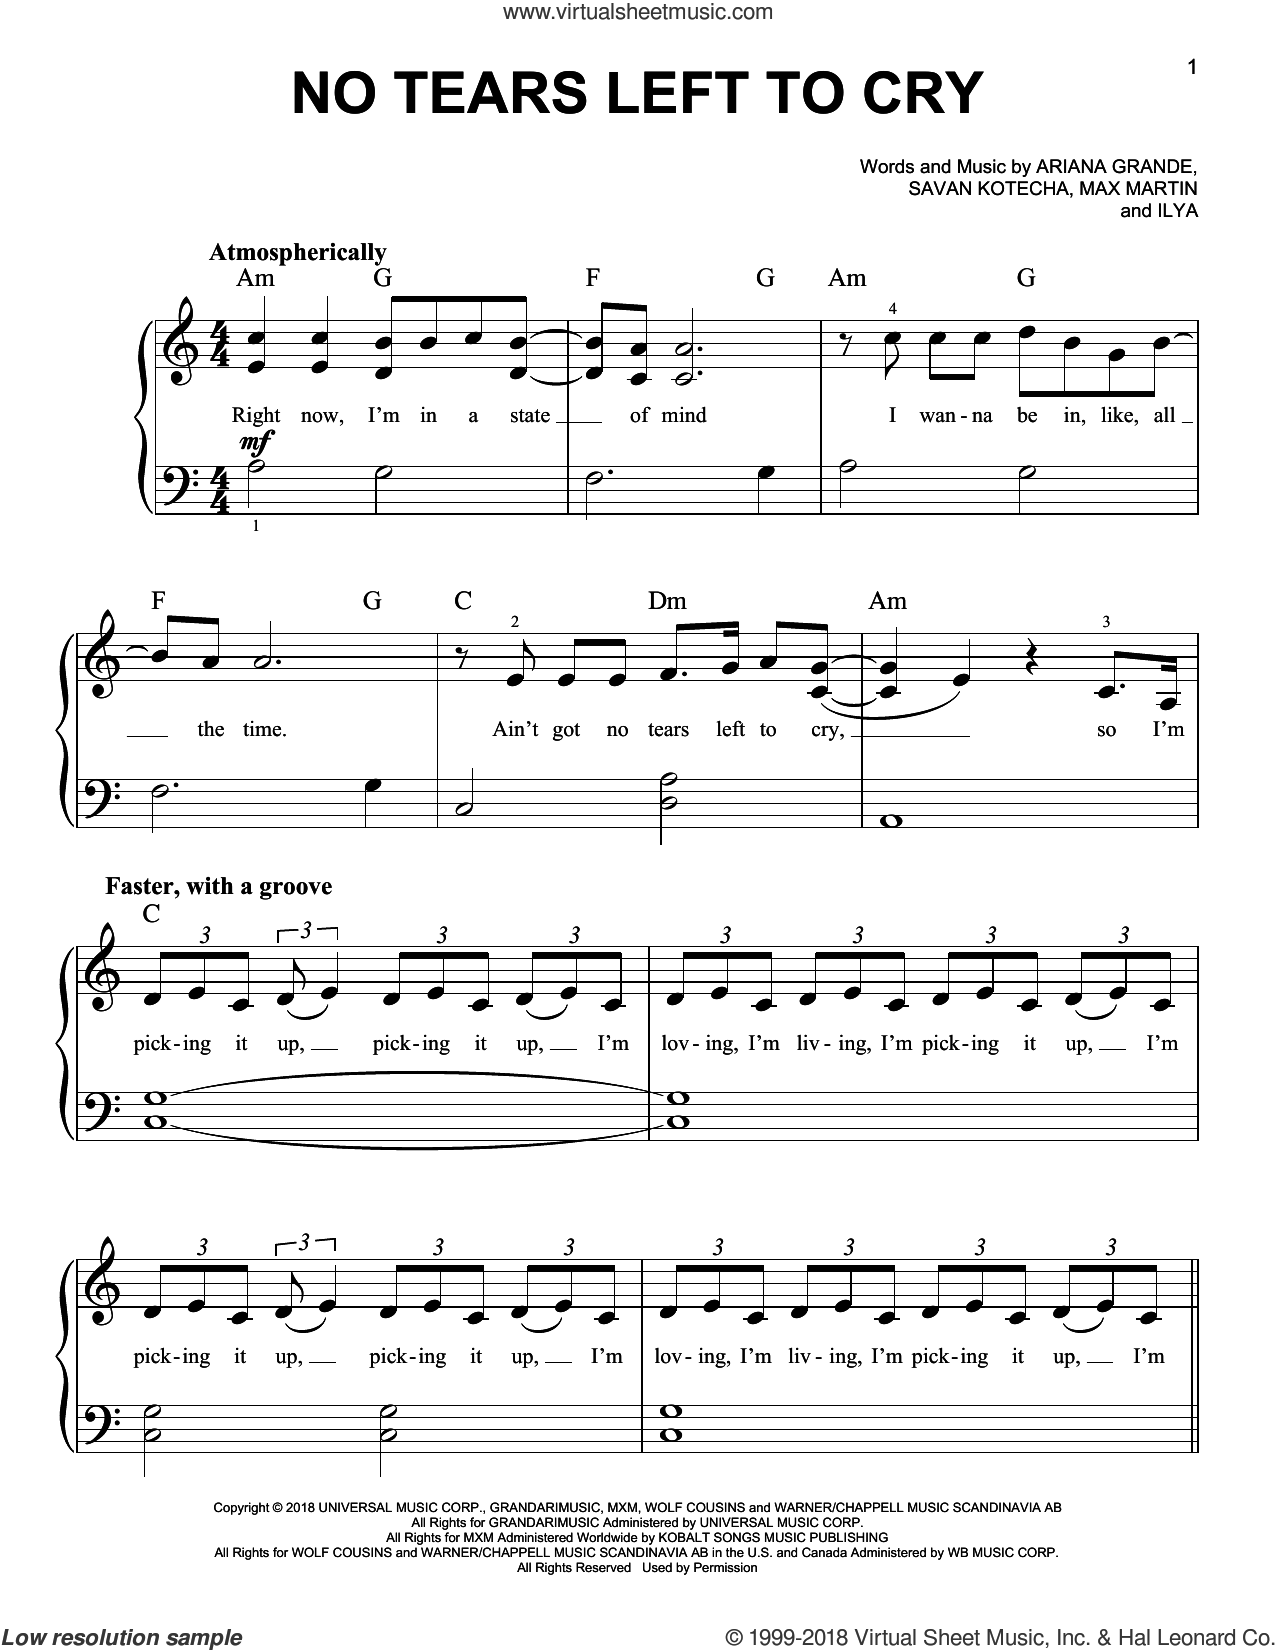 No Tears Left To Cry sheet music for piano solo by Ariana Grande, Ilya, Max Martin and Savan Kotecha, easy skill level